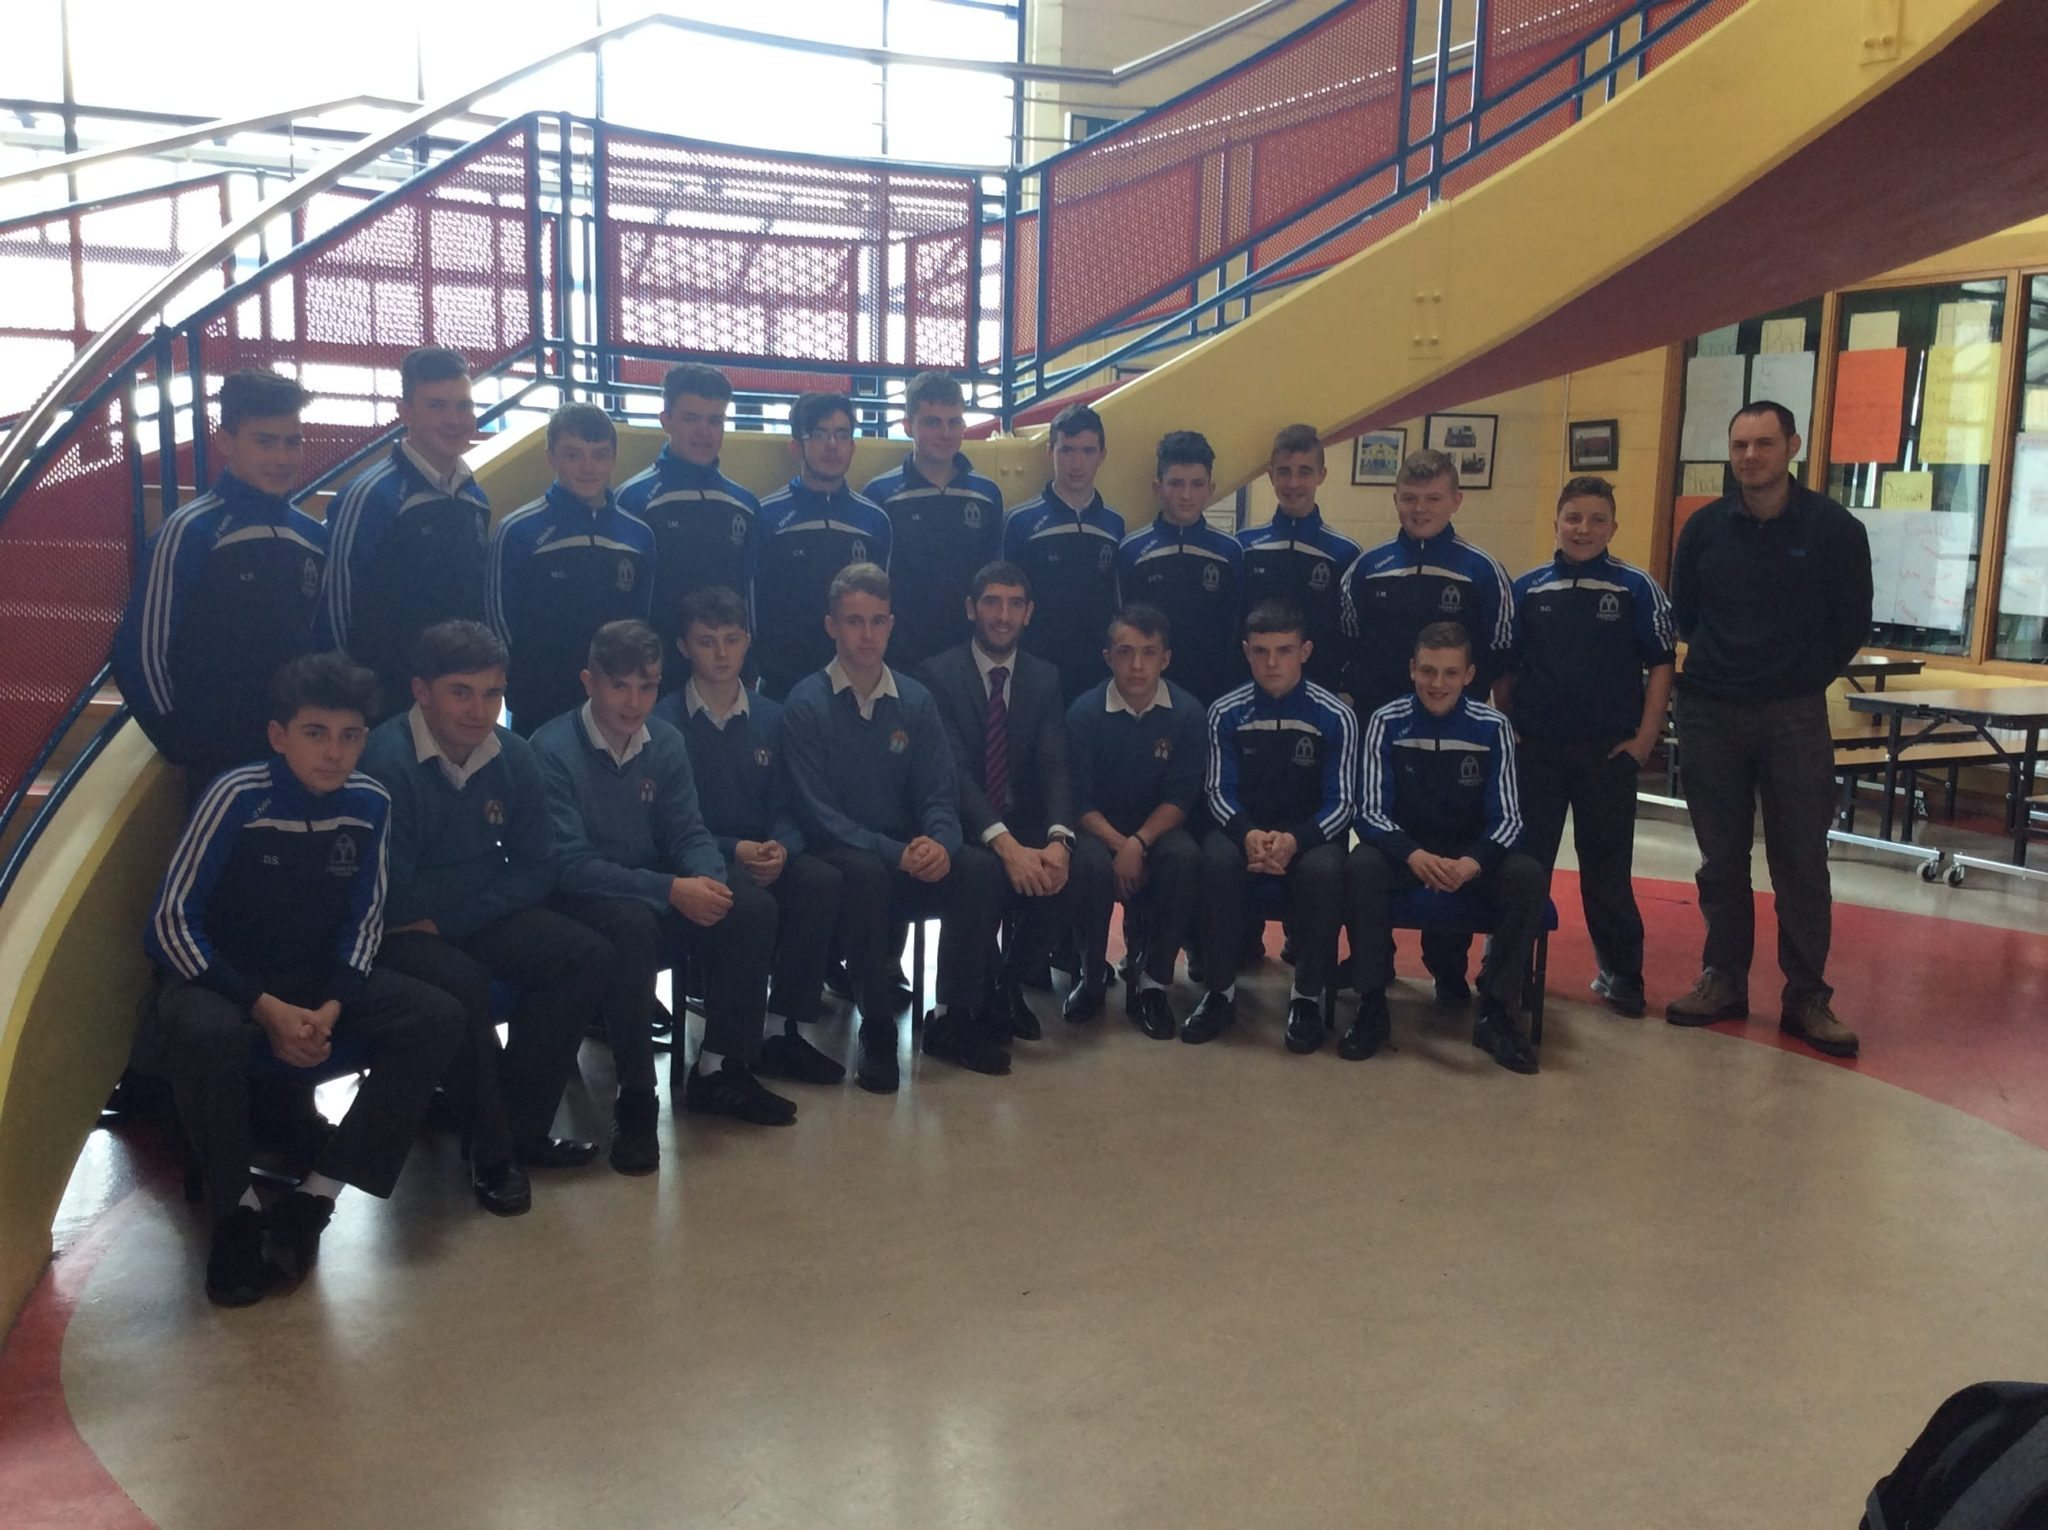 April 2016: Kerry Footballer, Killian Young, visits Desmond College